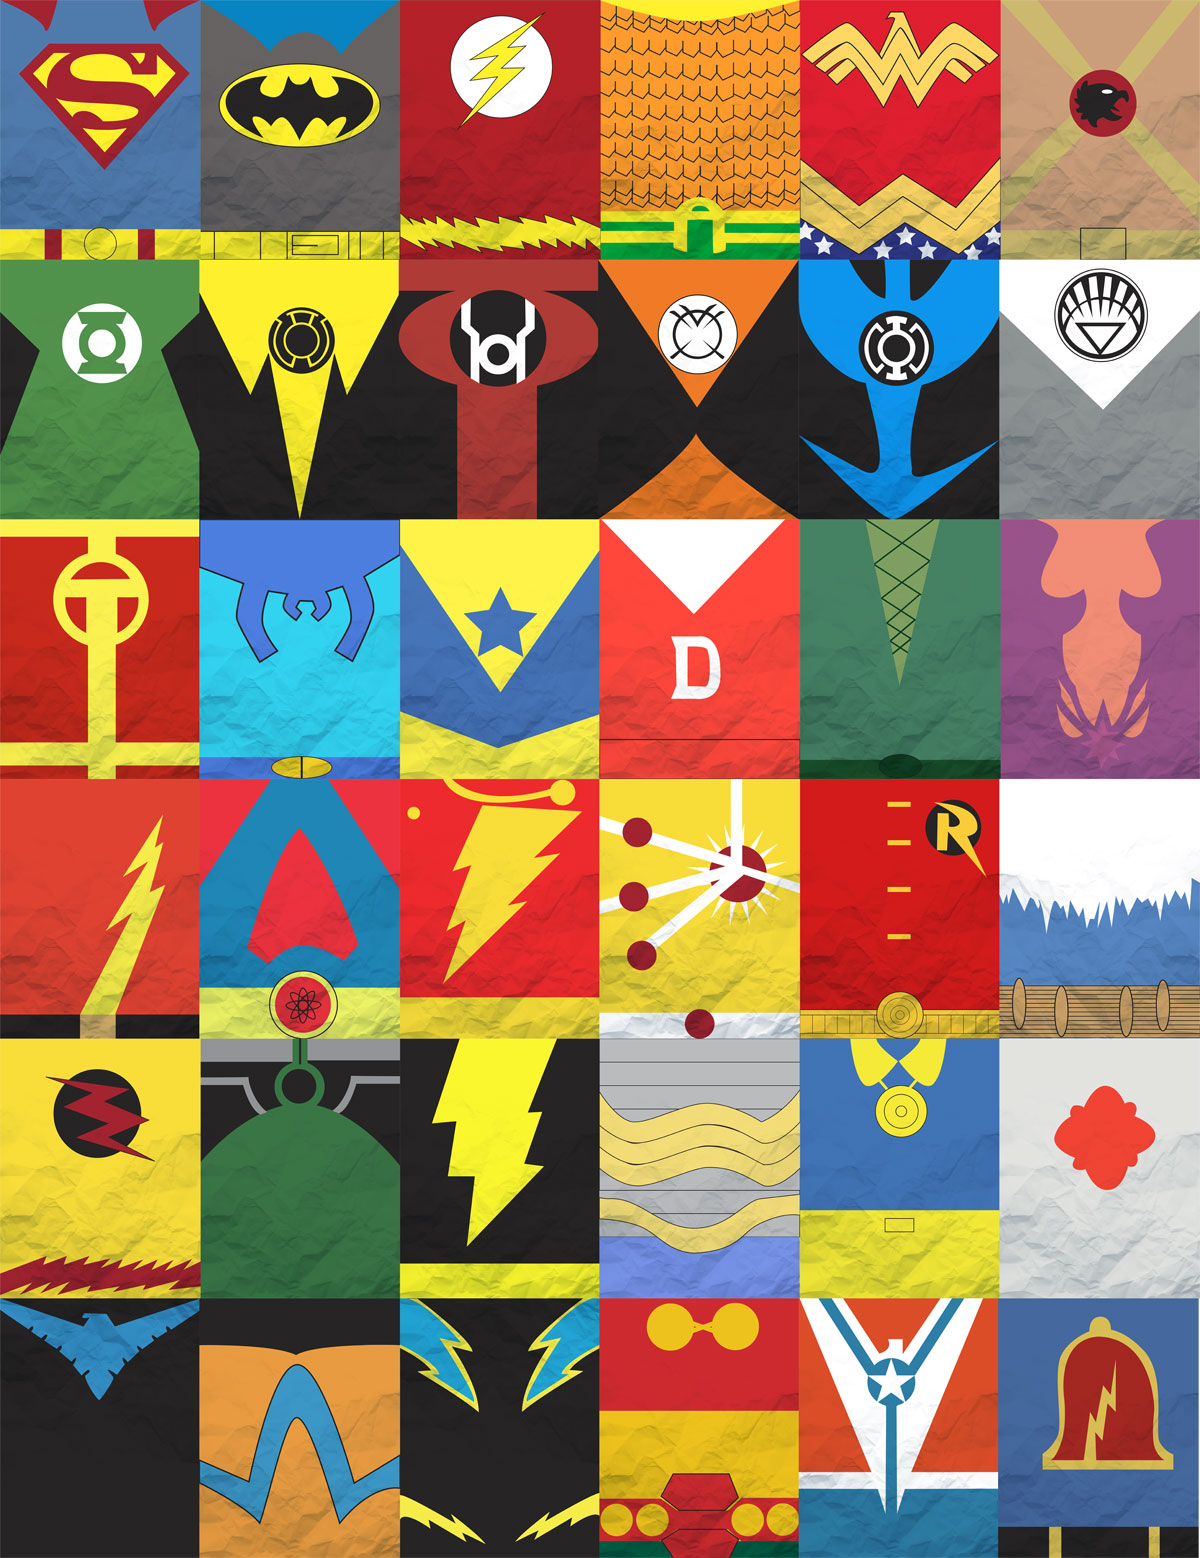 DC Comics Minimalist Posters by Dustin